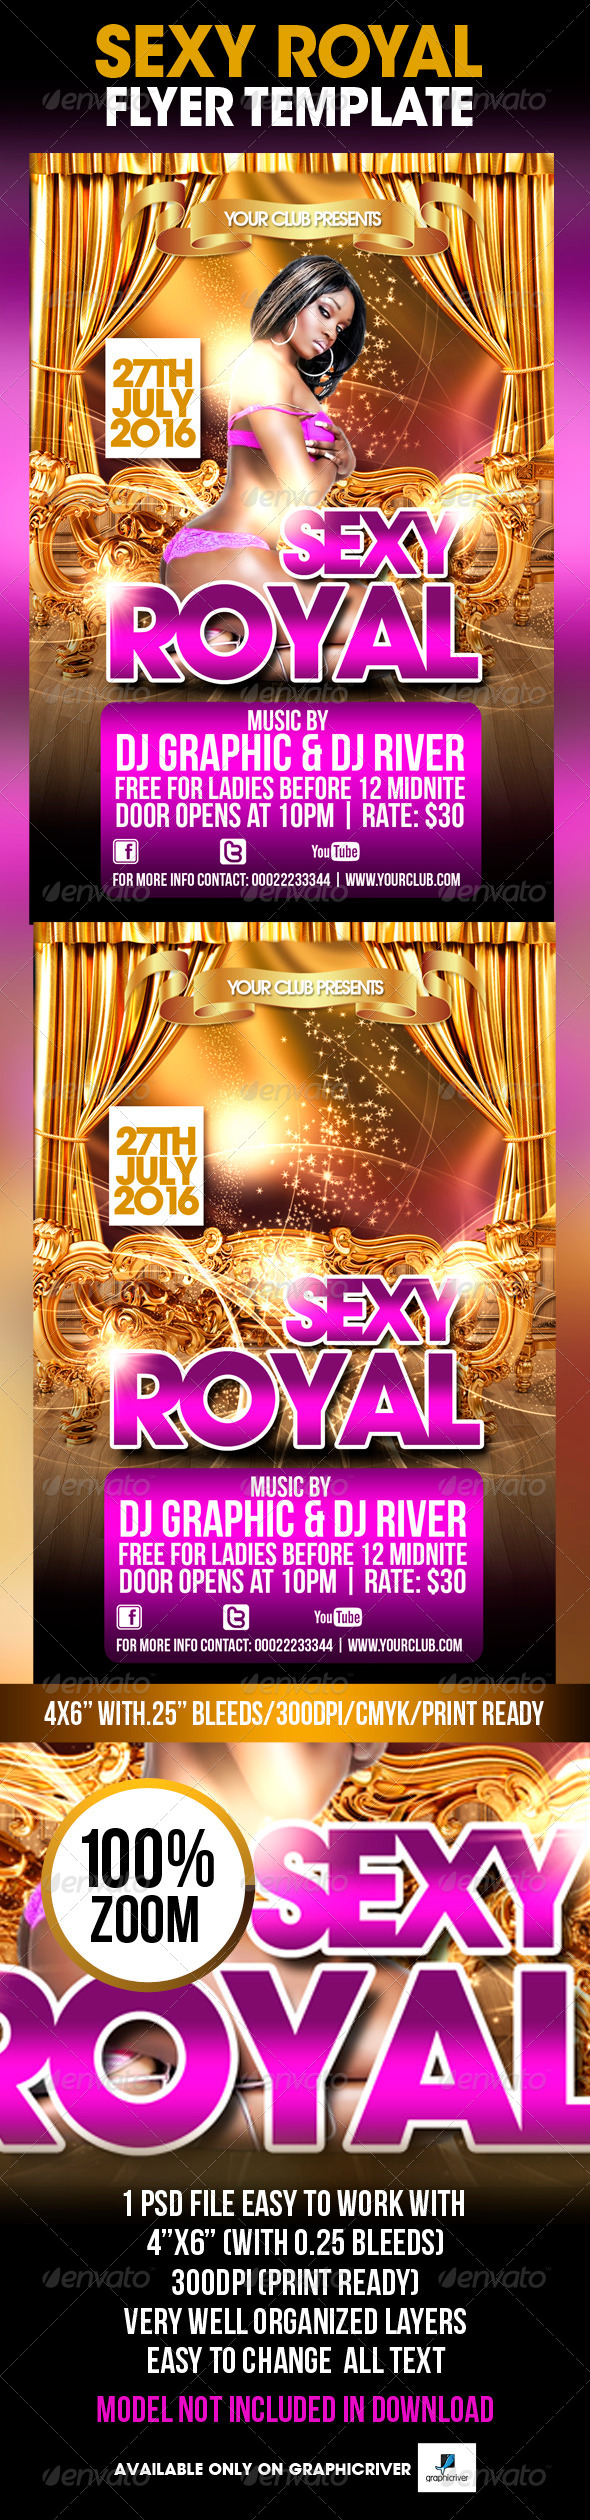 Sexy Royal Flyer Template - Flyers Print Templates